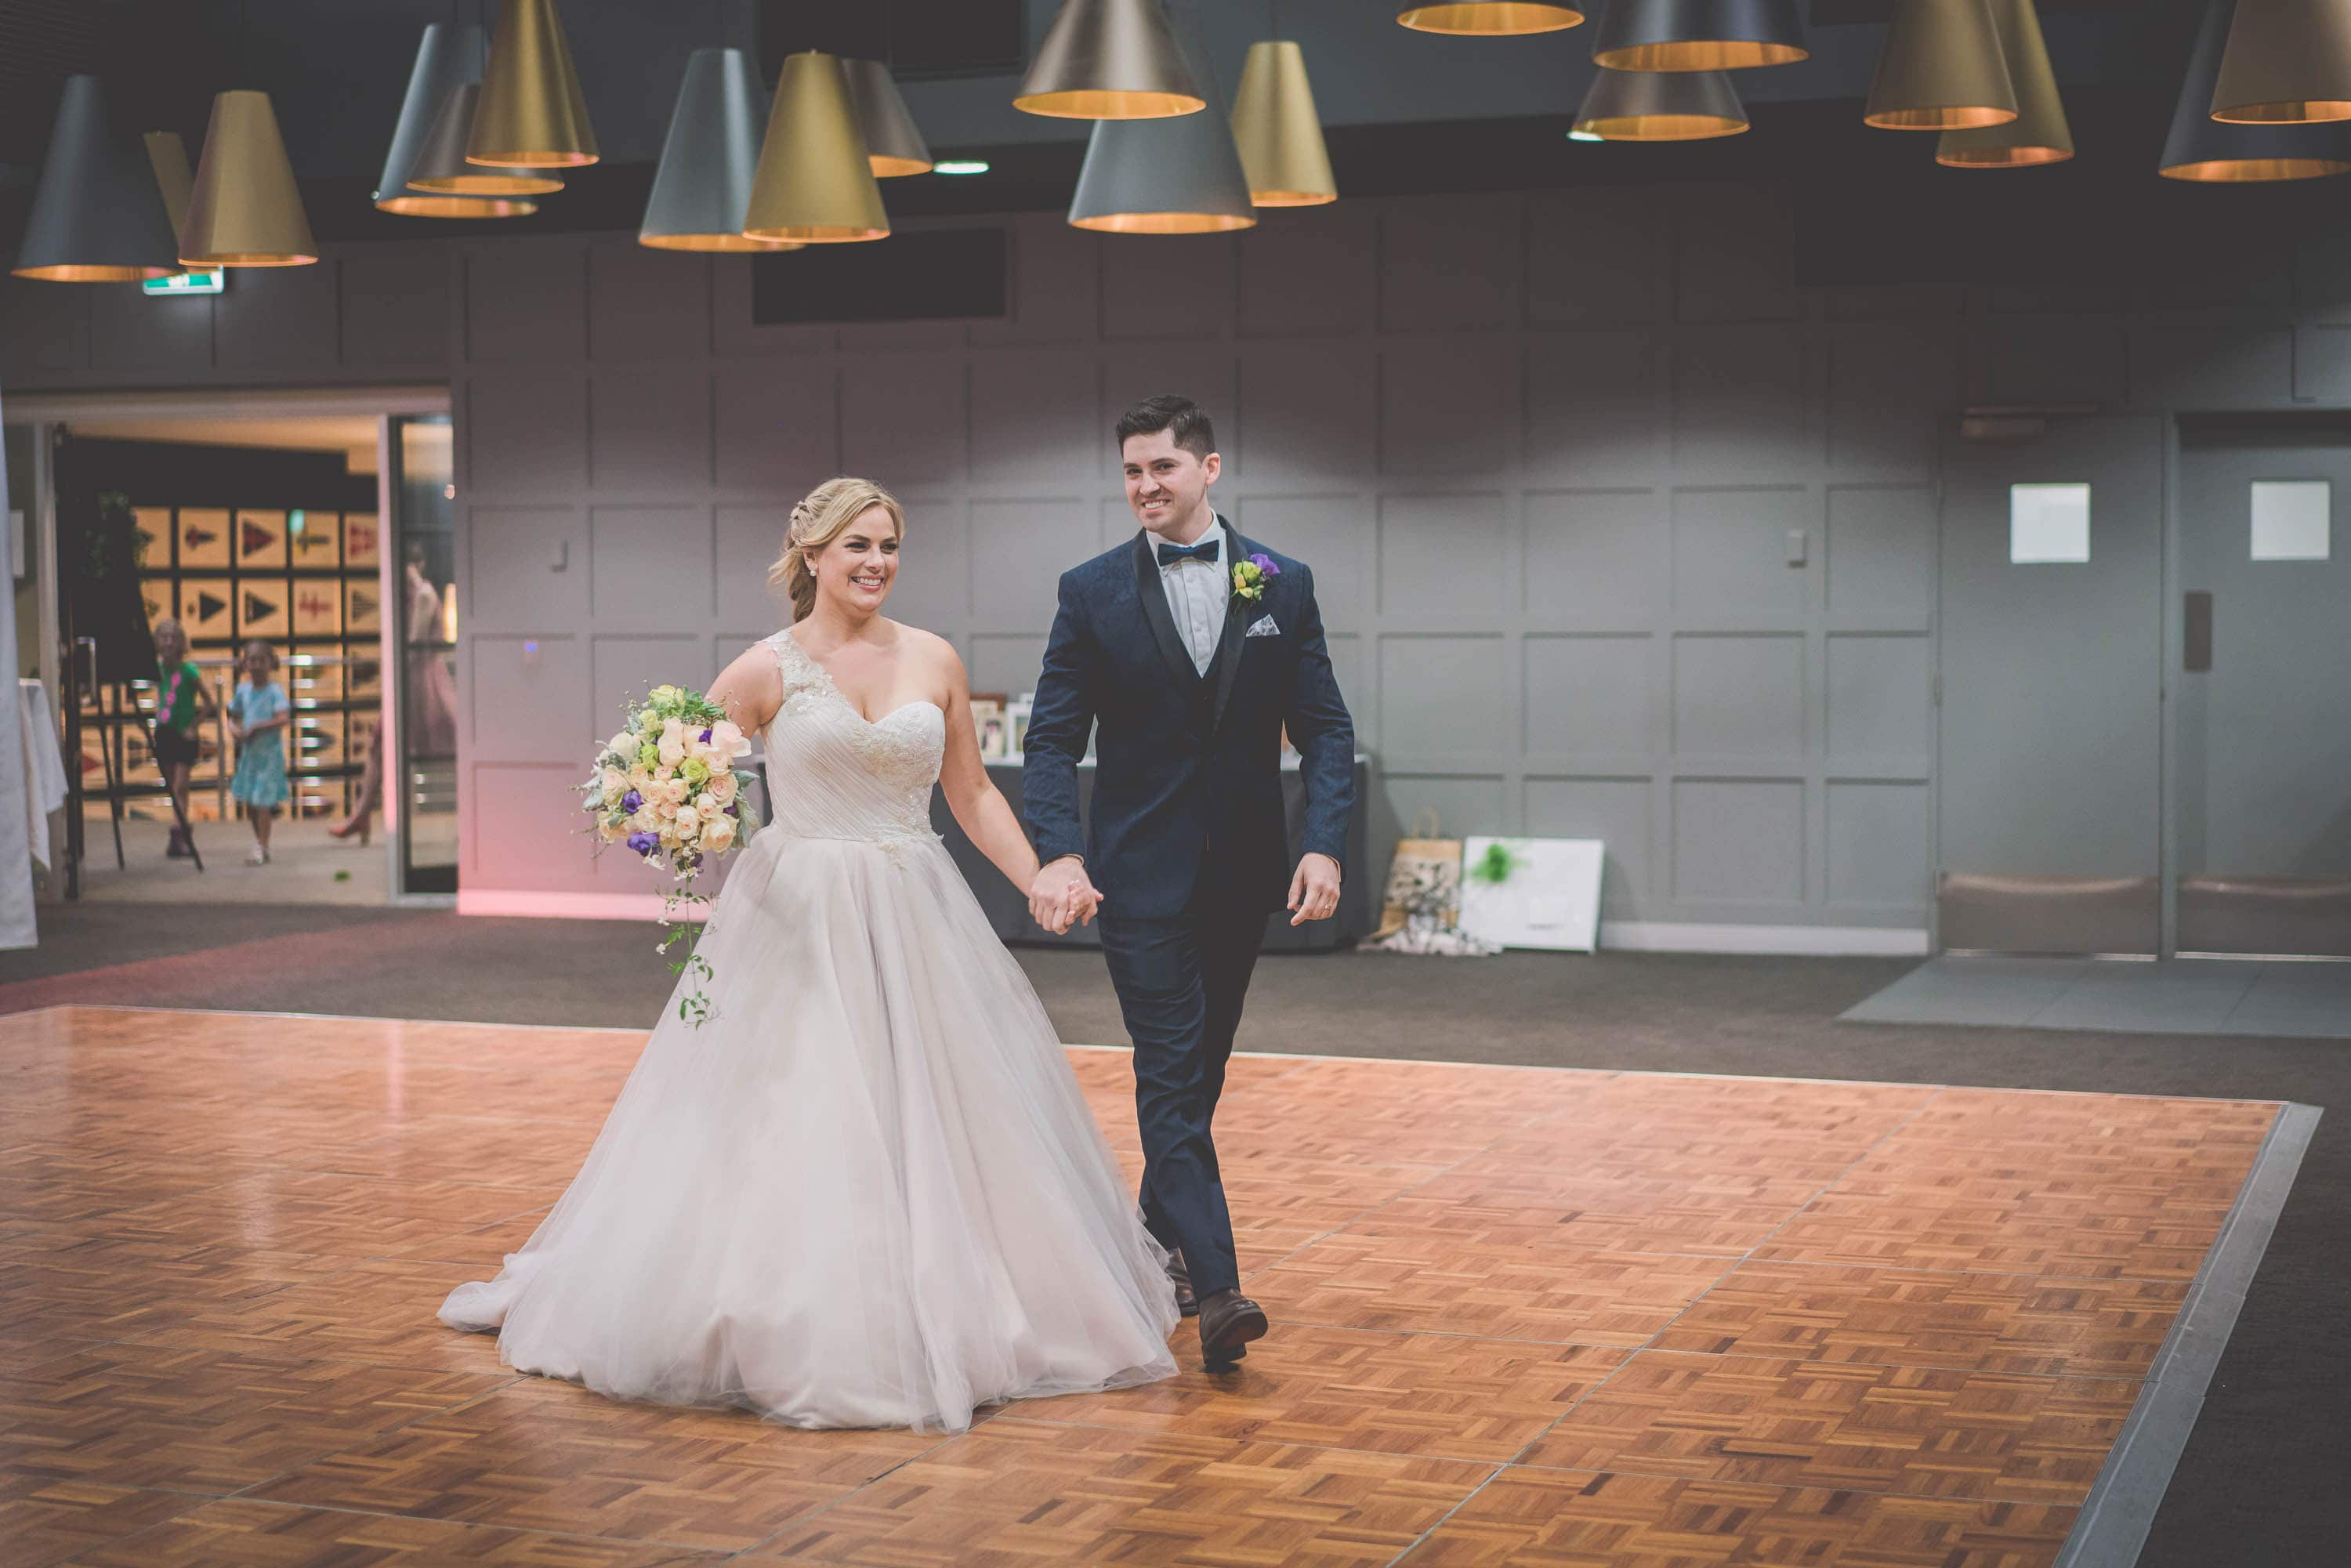 The bride and groom make their grand entrance to their wedding reception in Melbourne